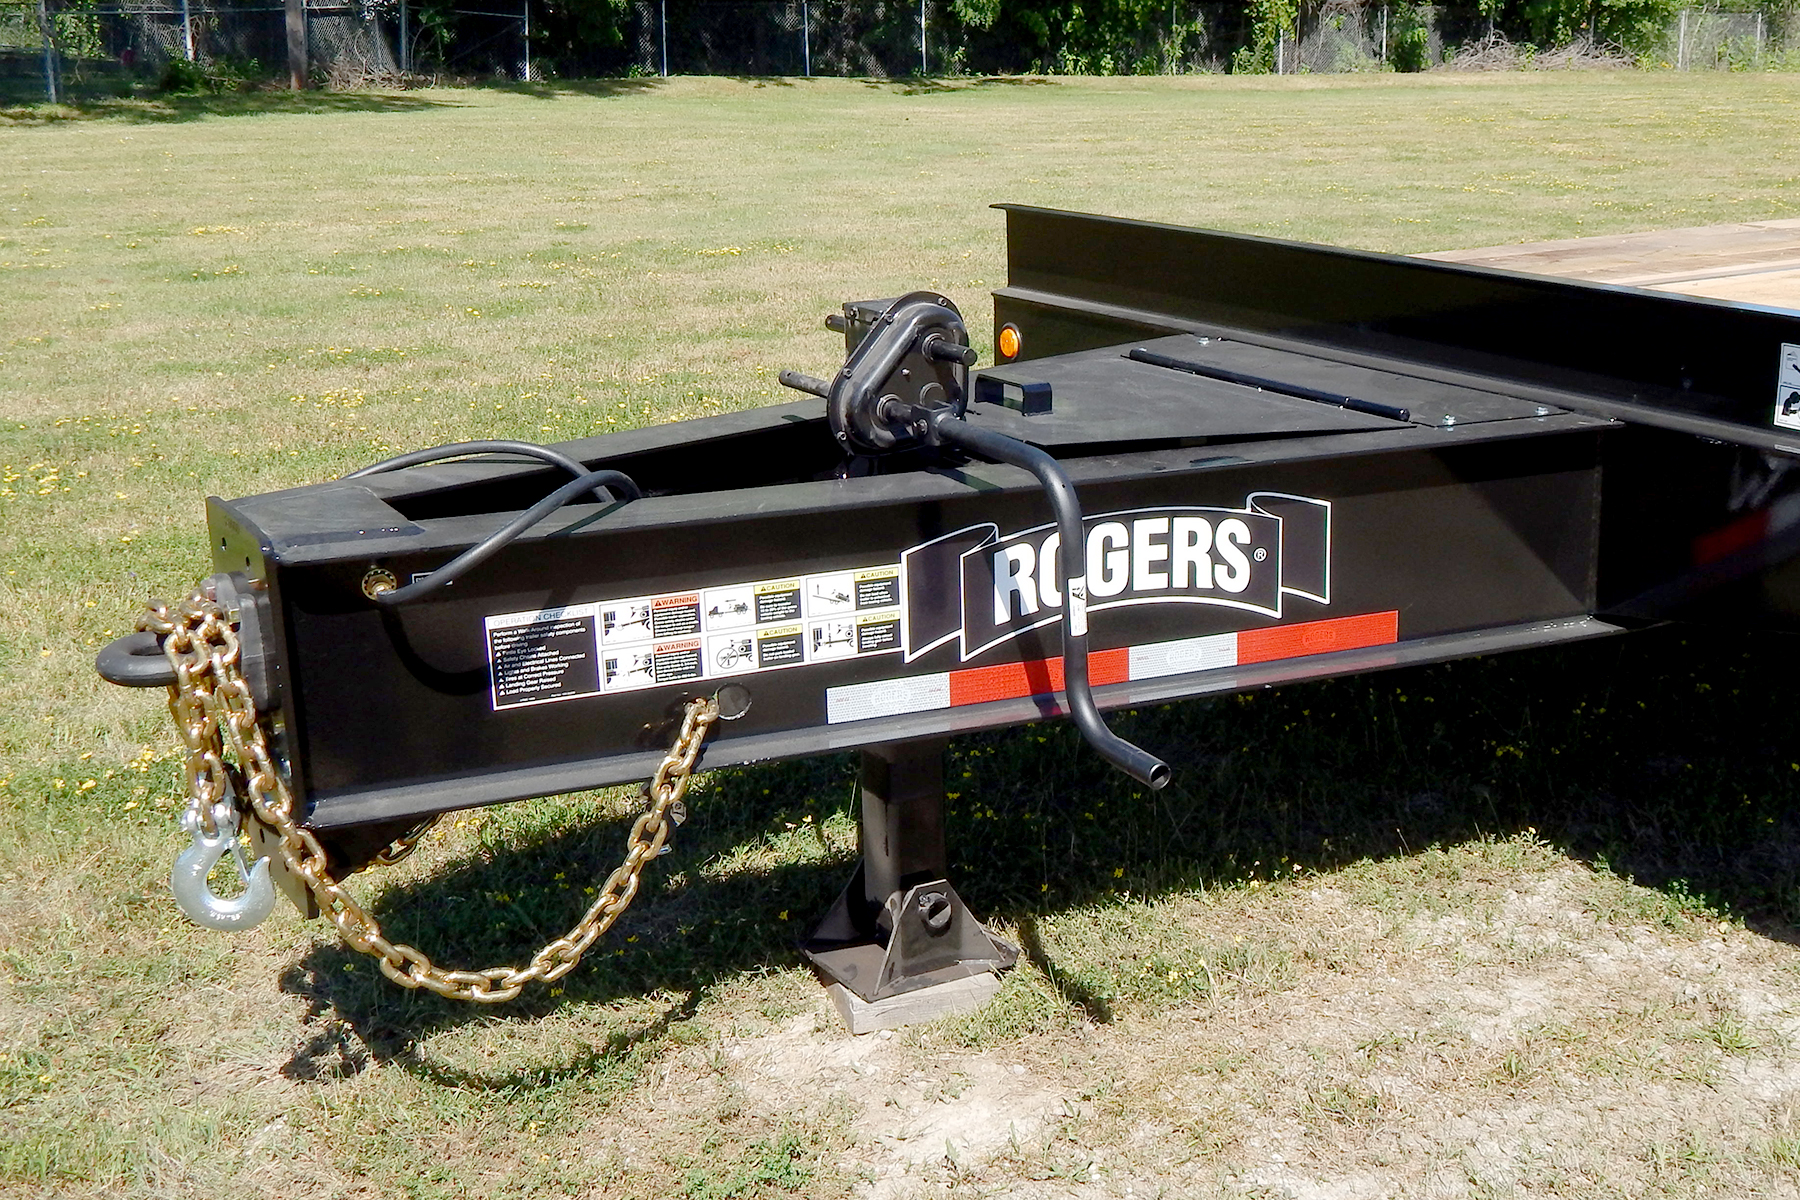 21 Ton Tag21xxl Air Ramps Tag Along Trailer Rear Loading 1 4 Wiring Quotes A Large Toolbox With Lockable Steel Lid Located In The Drawbar Provides Ample Storage For Chains